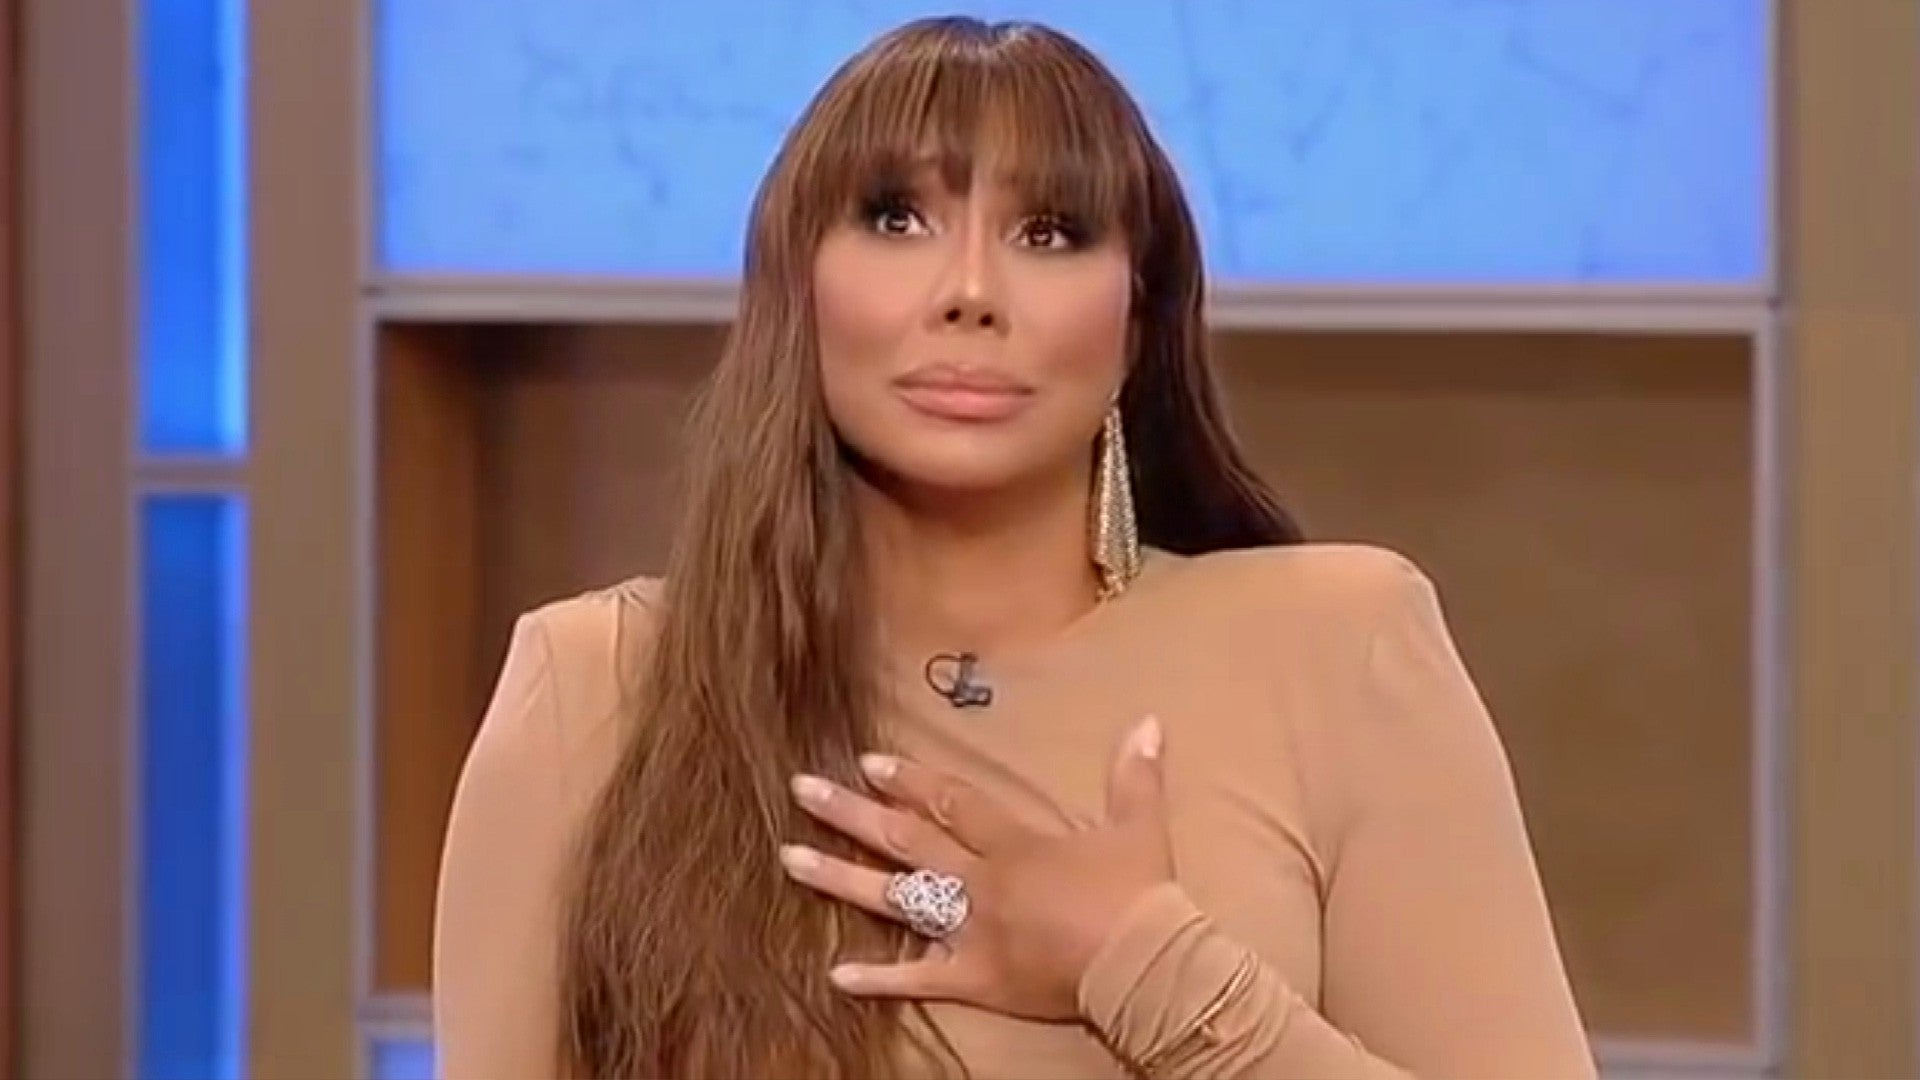 Tamar Braxton Talks On Her Suicide Attempt; She Says She Felt Logan Would Have Been Better Off Without Her